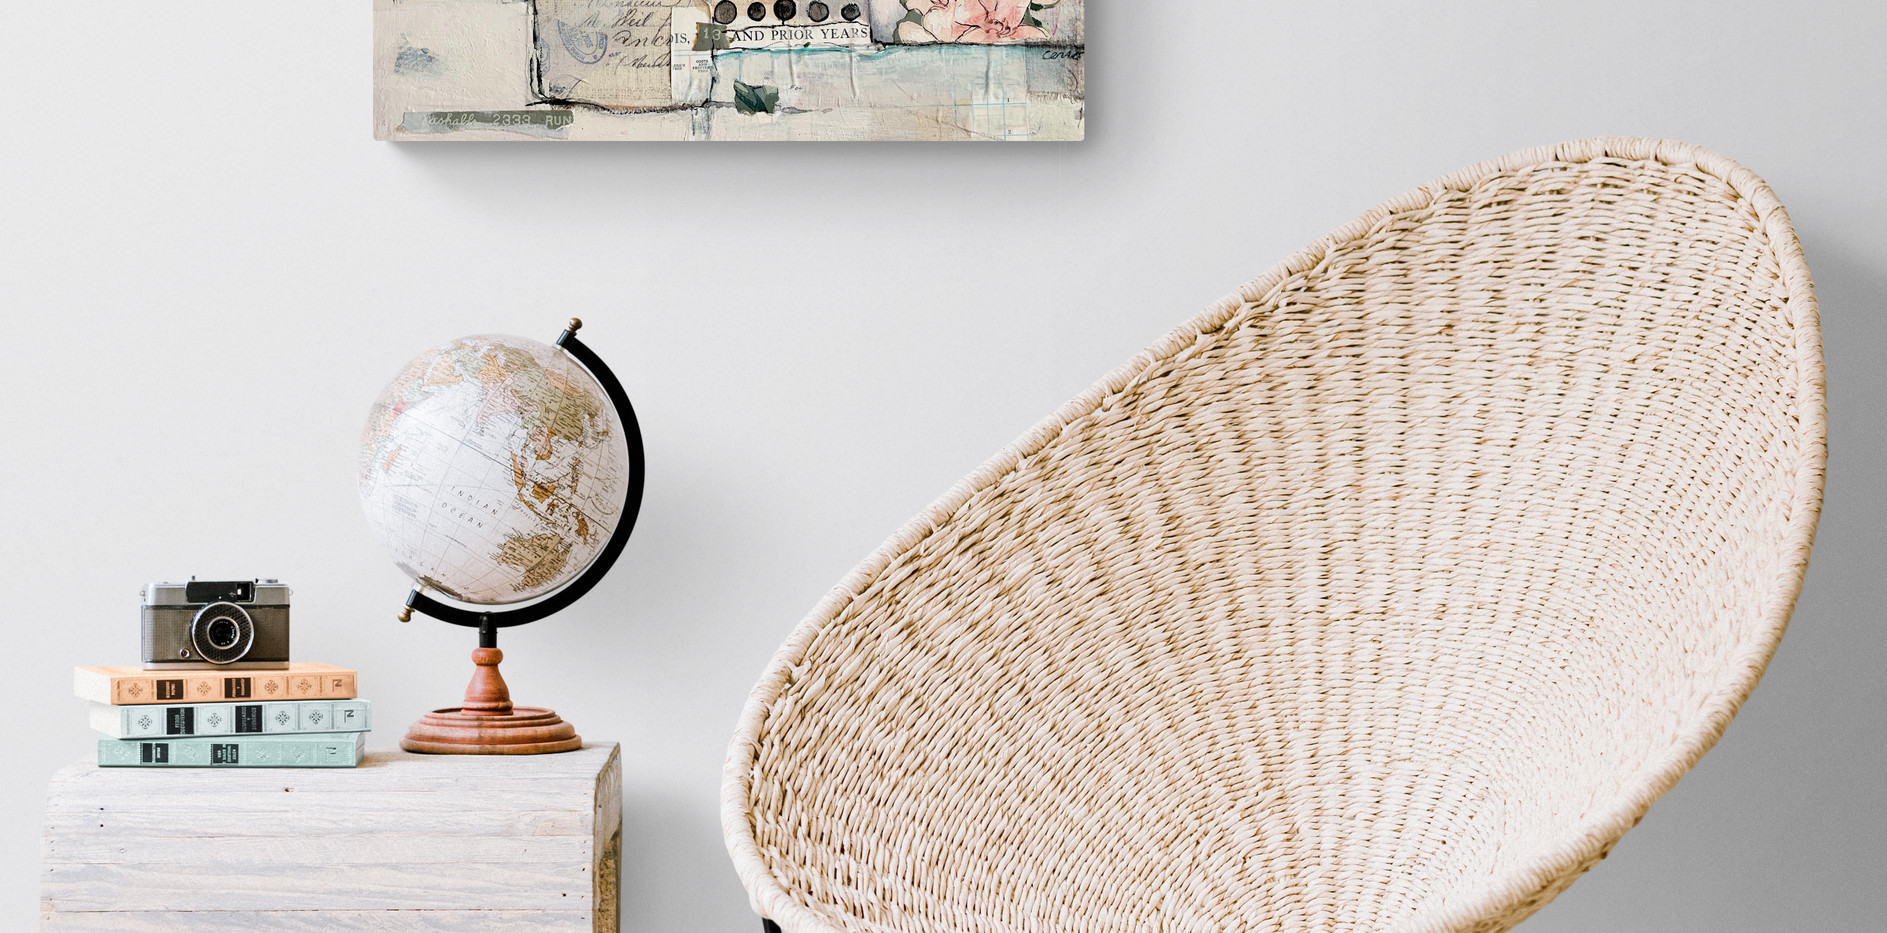 Sitting_room_with_wicker_chair.jpg